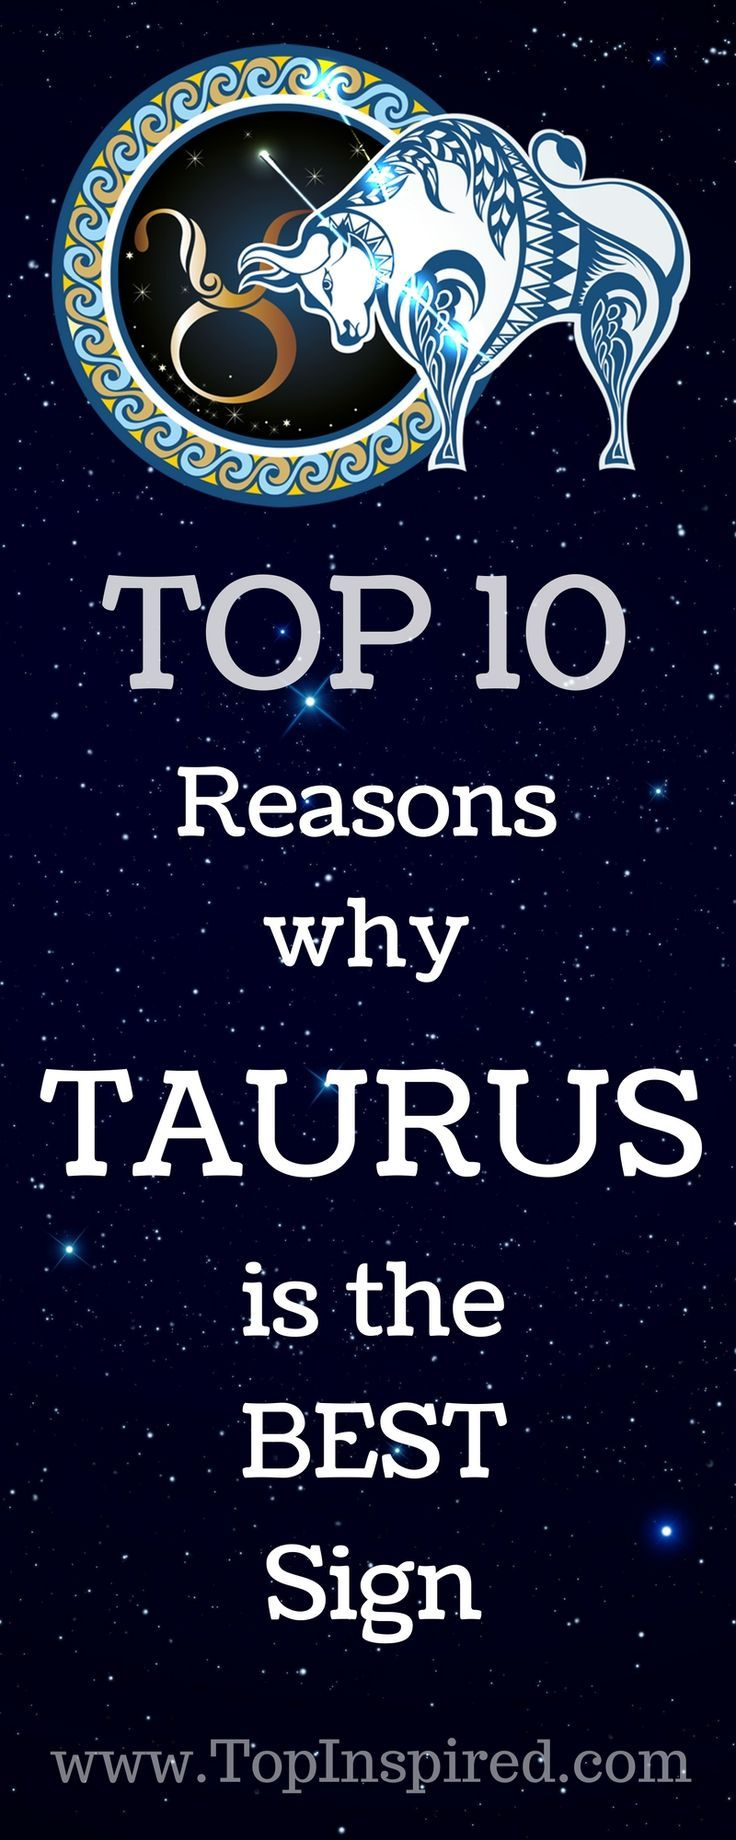 People born between April 21 and May 21 are born under the star sign of Taurus. The Taurus Bull is stubborn, strong-headed, fearless and patient but can be raging when provoked. Taurus is known for a great eye for beauty, a tender and caring nature and a desire for comfort and security. If these reasons were not enough to love Taurus, let's see what other positive personality traits they have. #Taurus